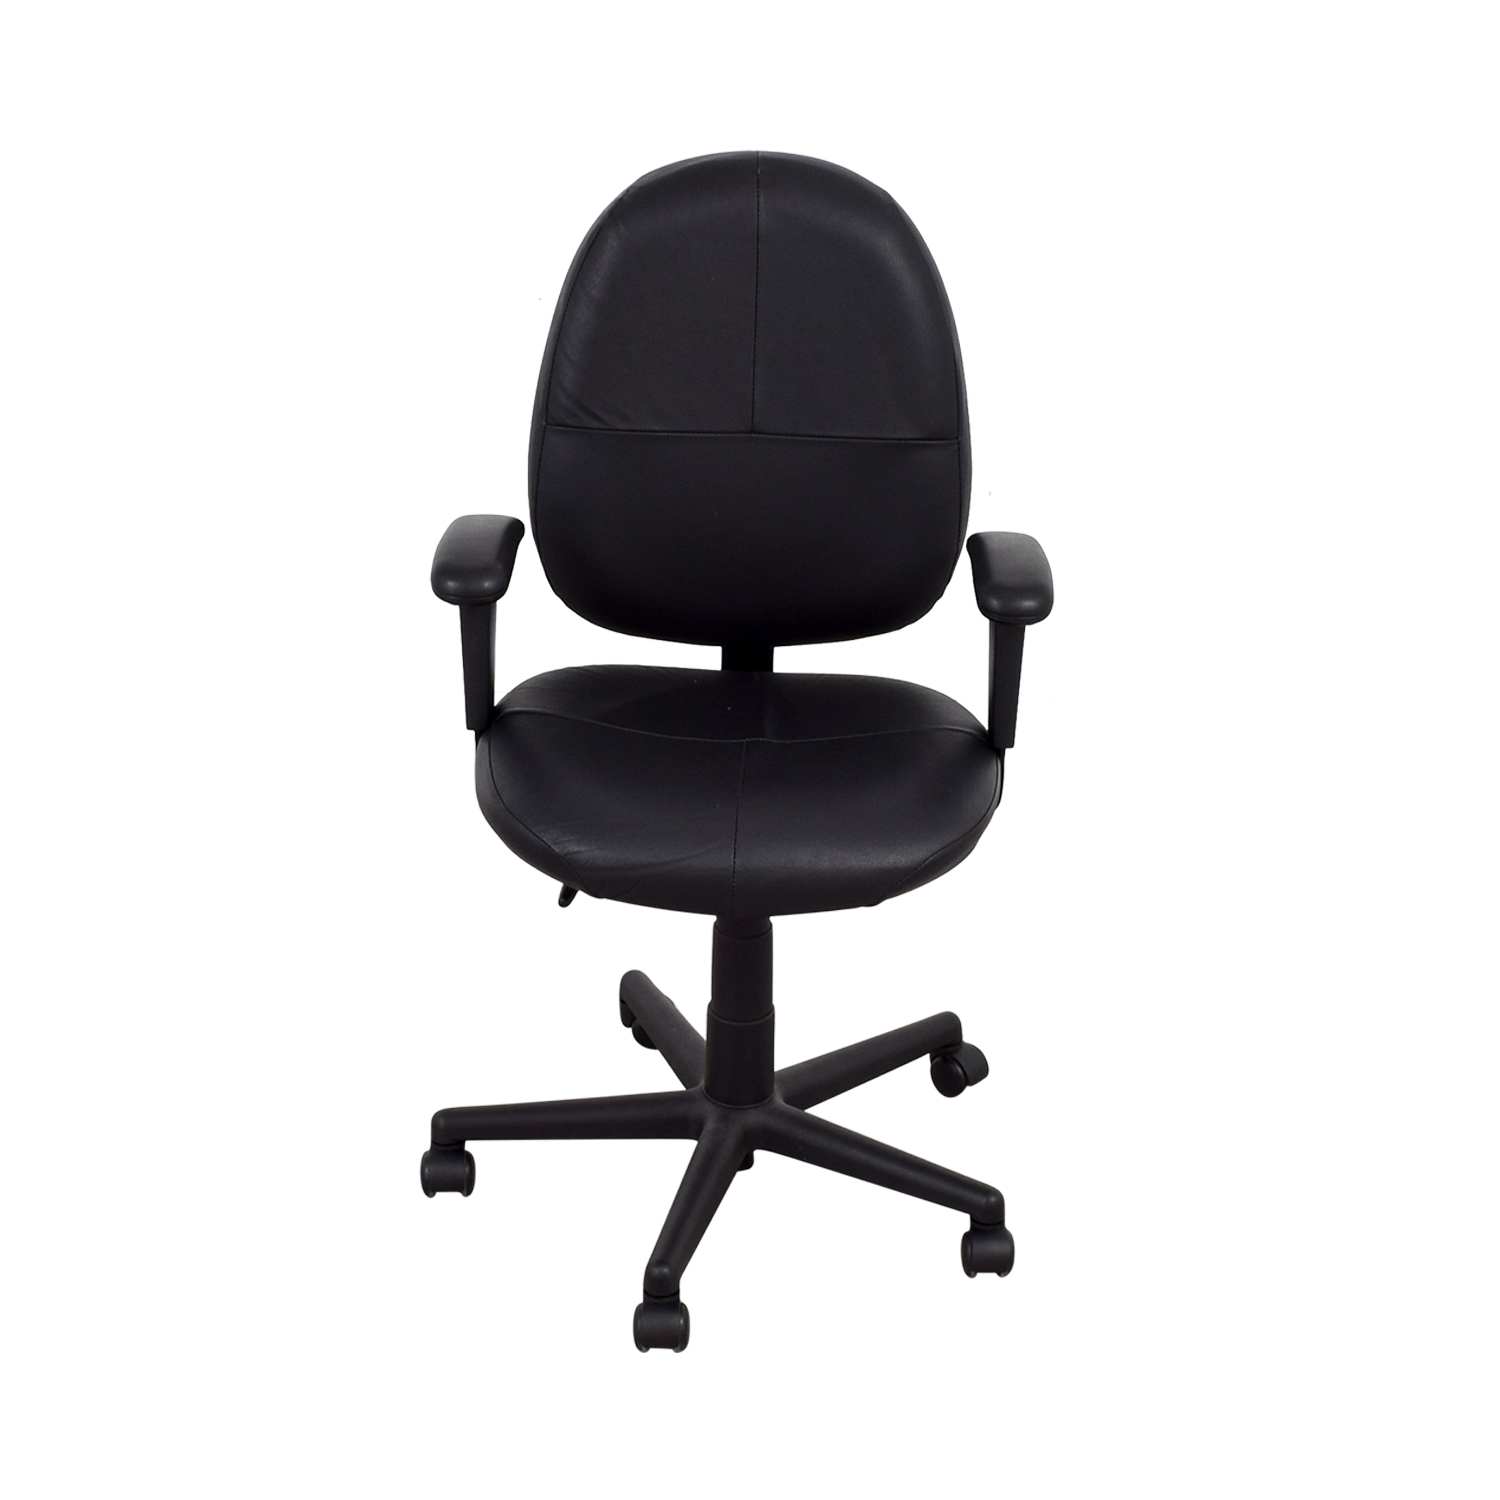 Standard Office Chair / Chairs